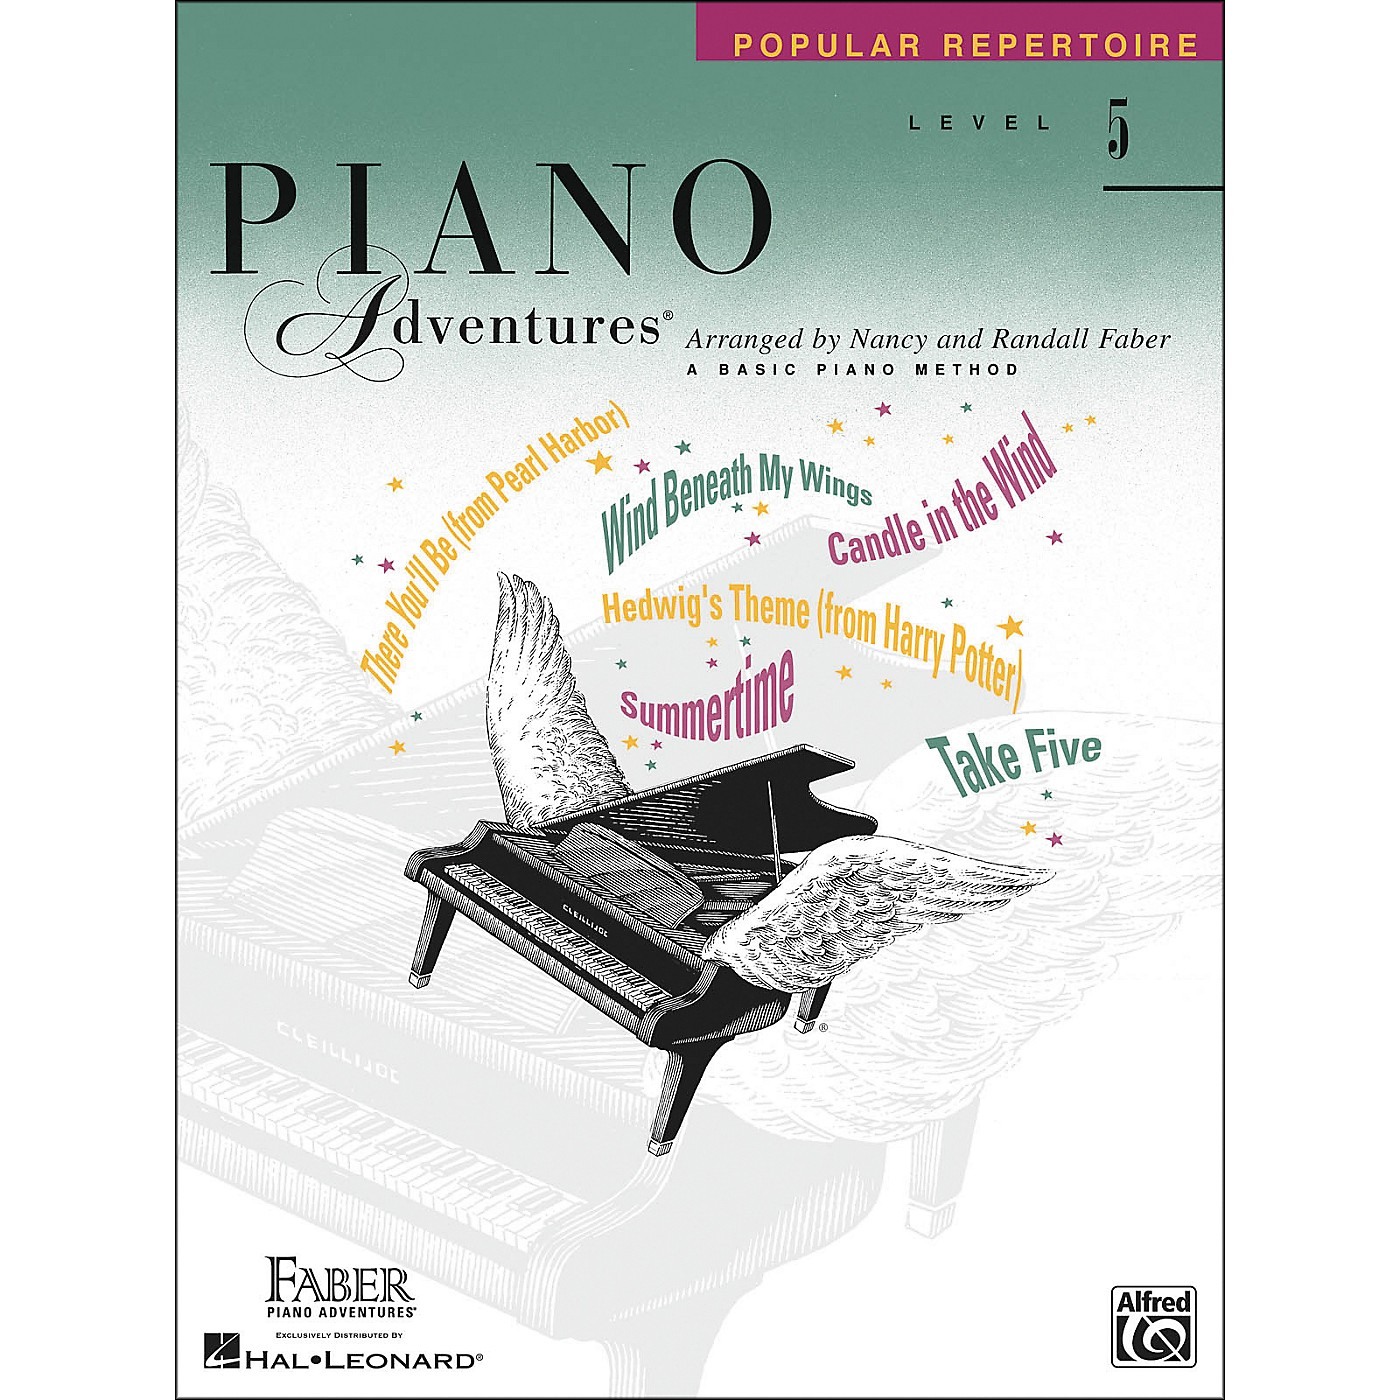 Faber Piano Adventures Piano Adventures Popular Repertoire Level 5 - Faber Piano thumbnail